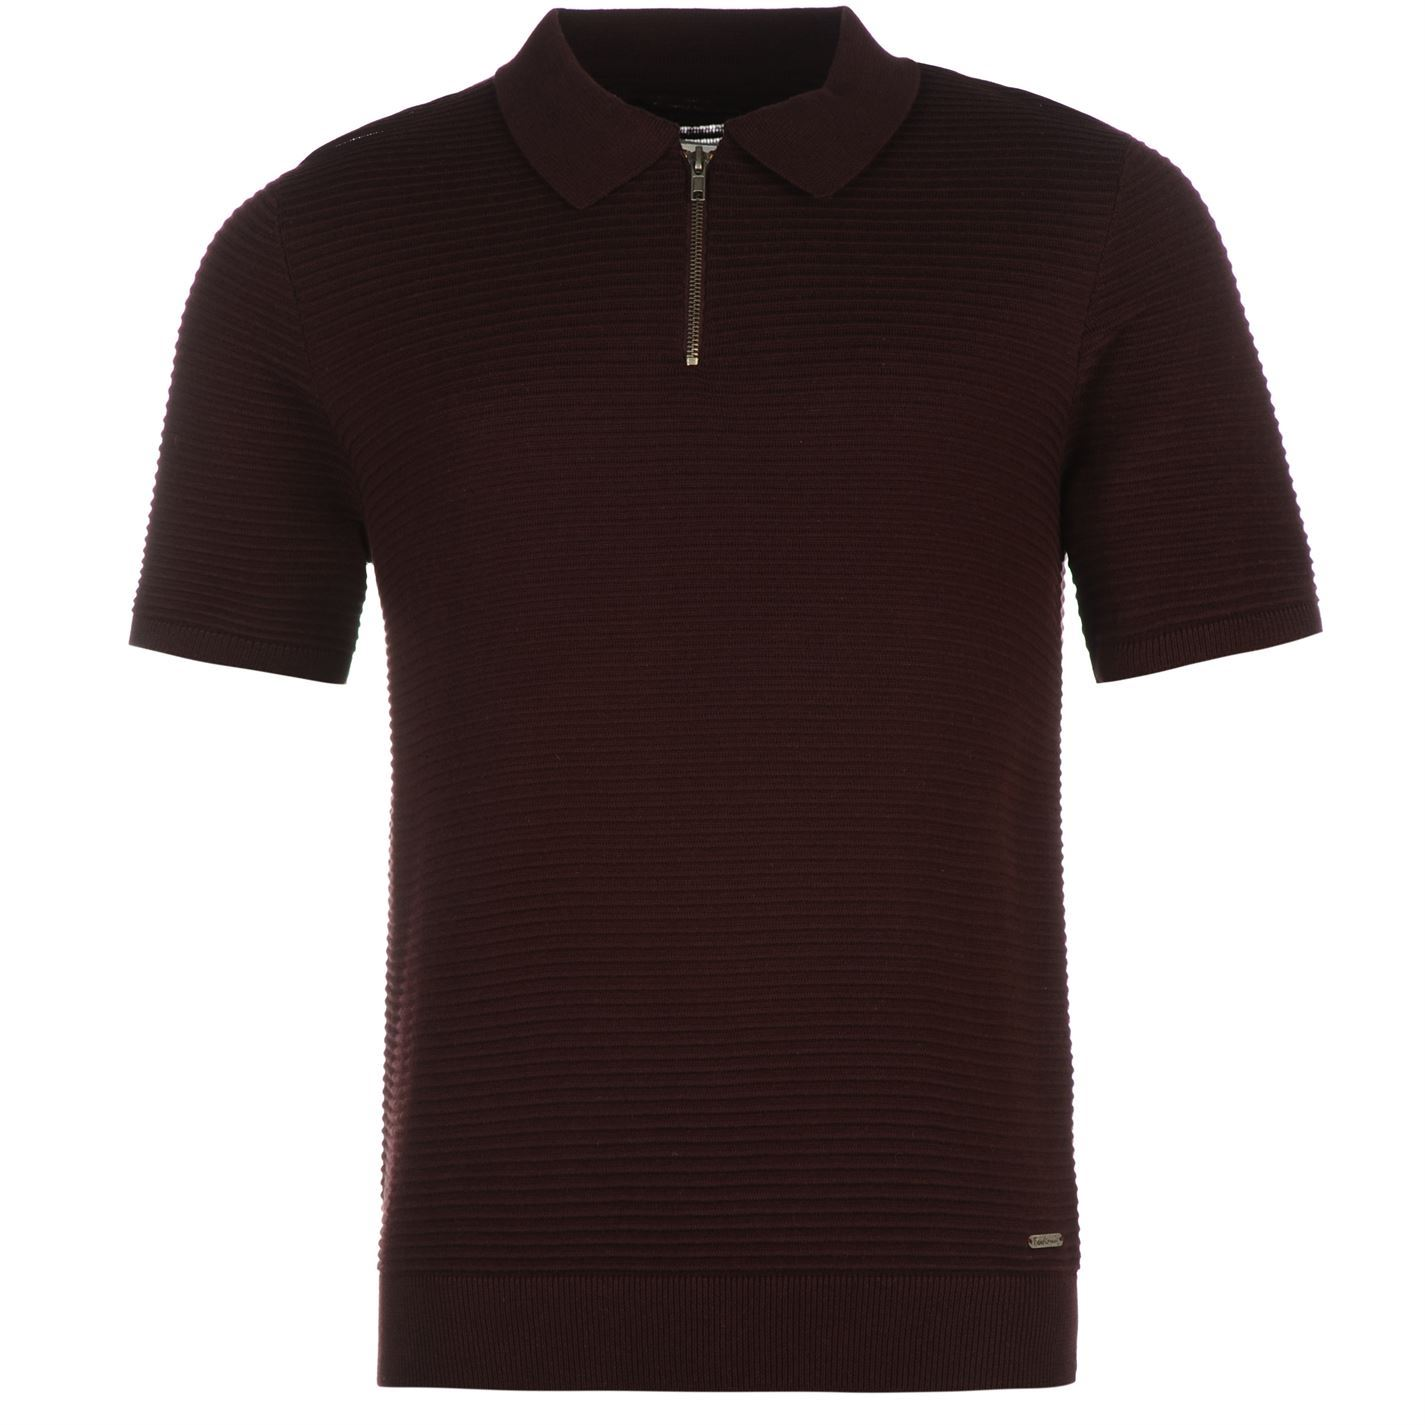 Top colors For plum shirts for men Purple plum shirts for men Plum Shirts For Men + Save this search. Showing plum shirts for men Free Shipping $+ at Totokaelo Lanvin Oversized Short Sleeve Shirt $ Get a Sale Alert.